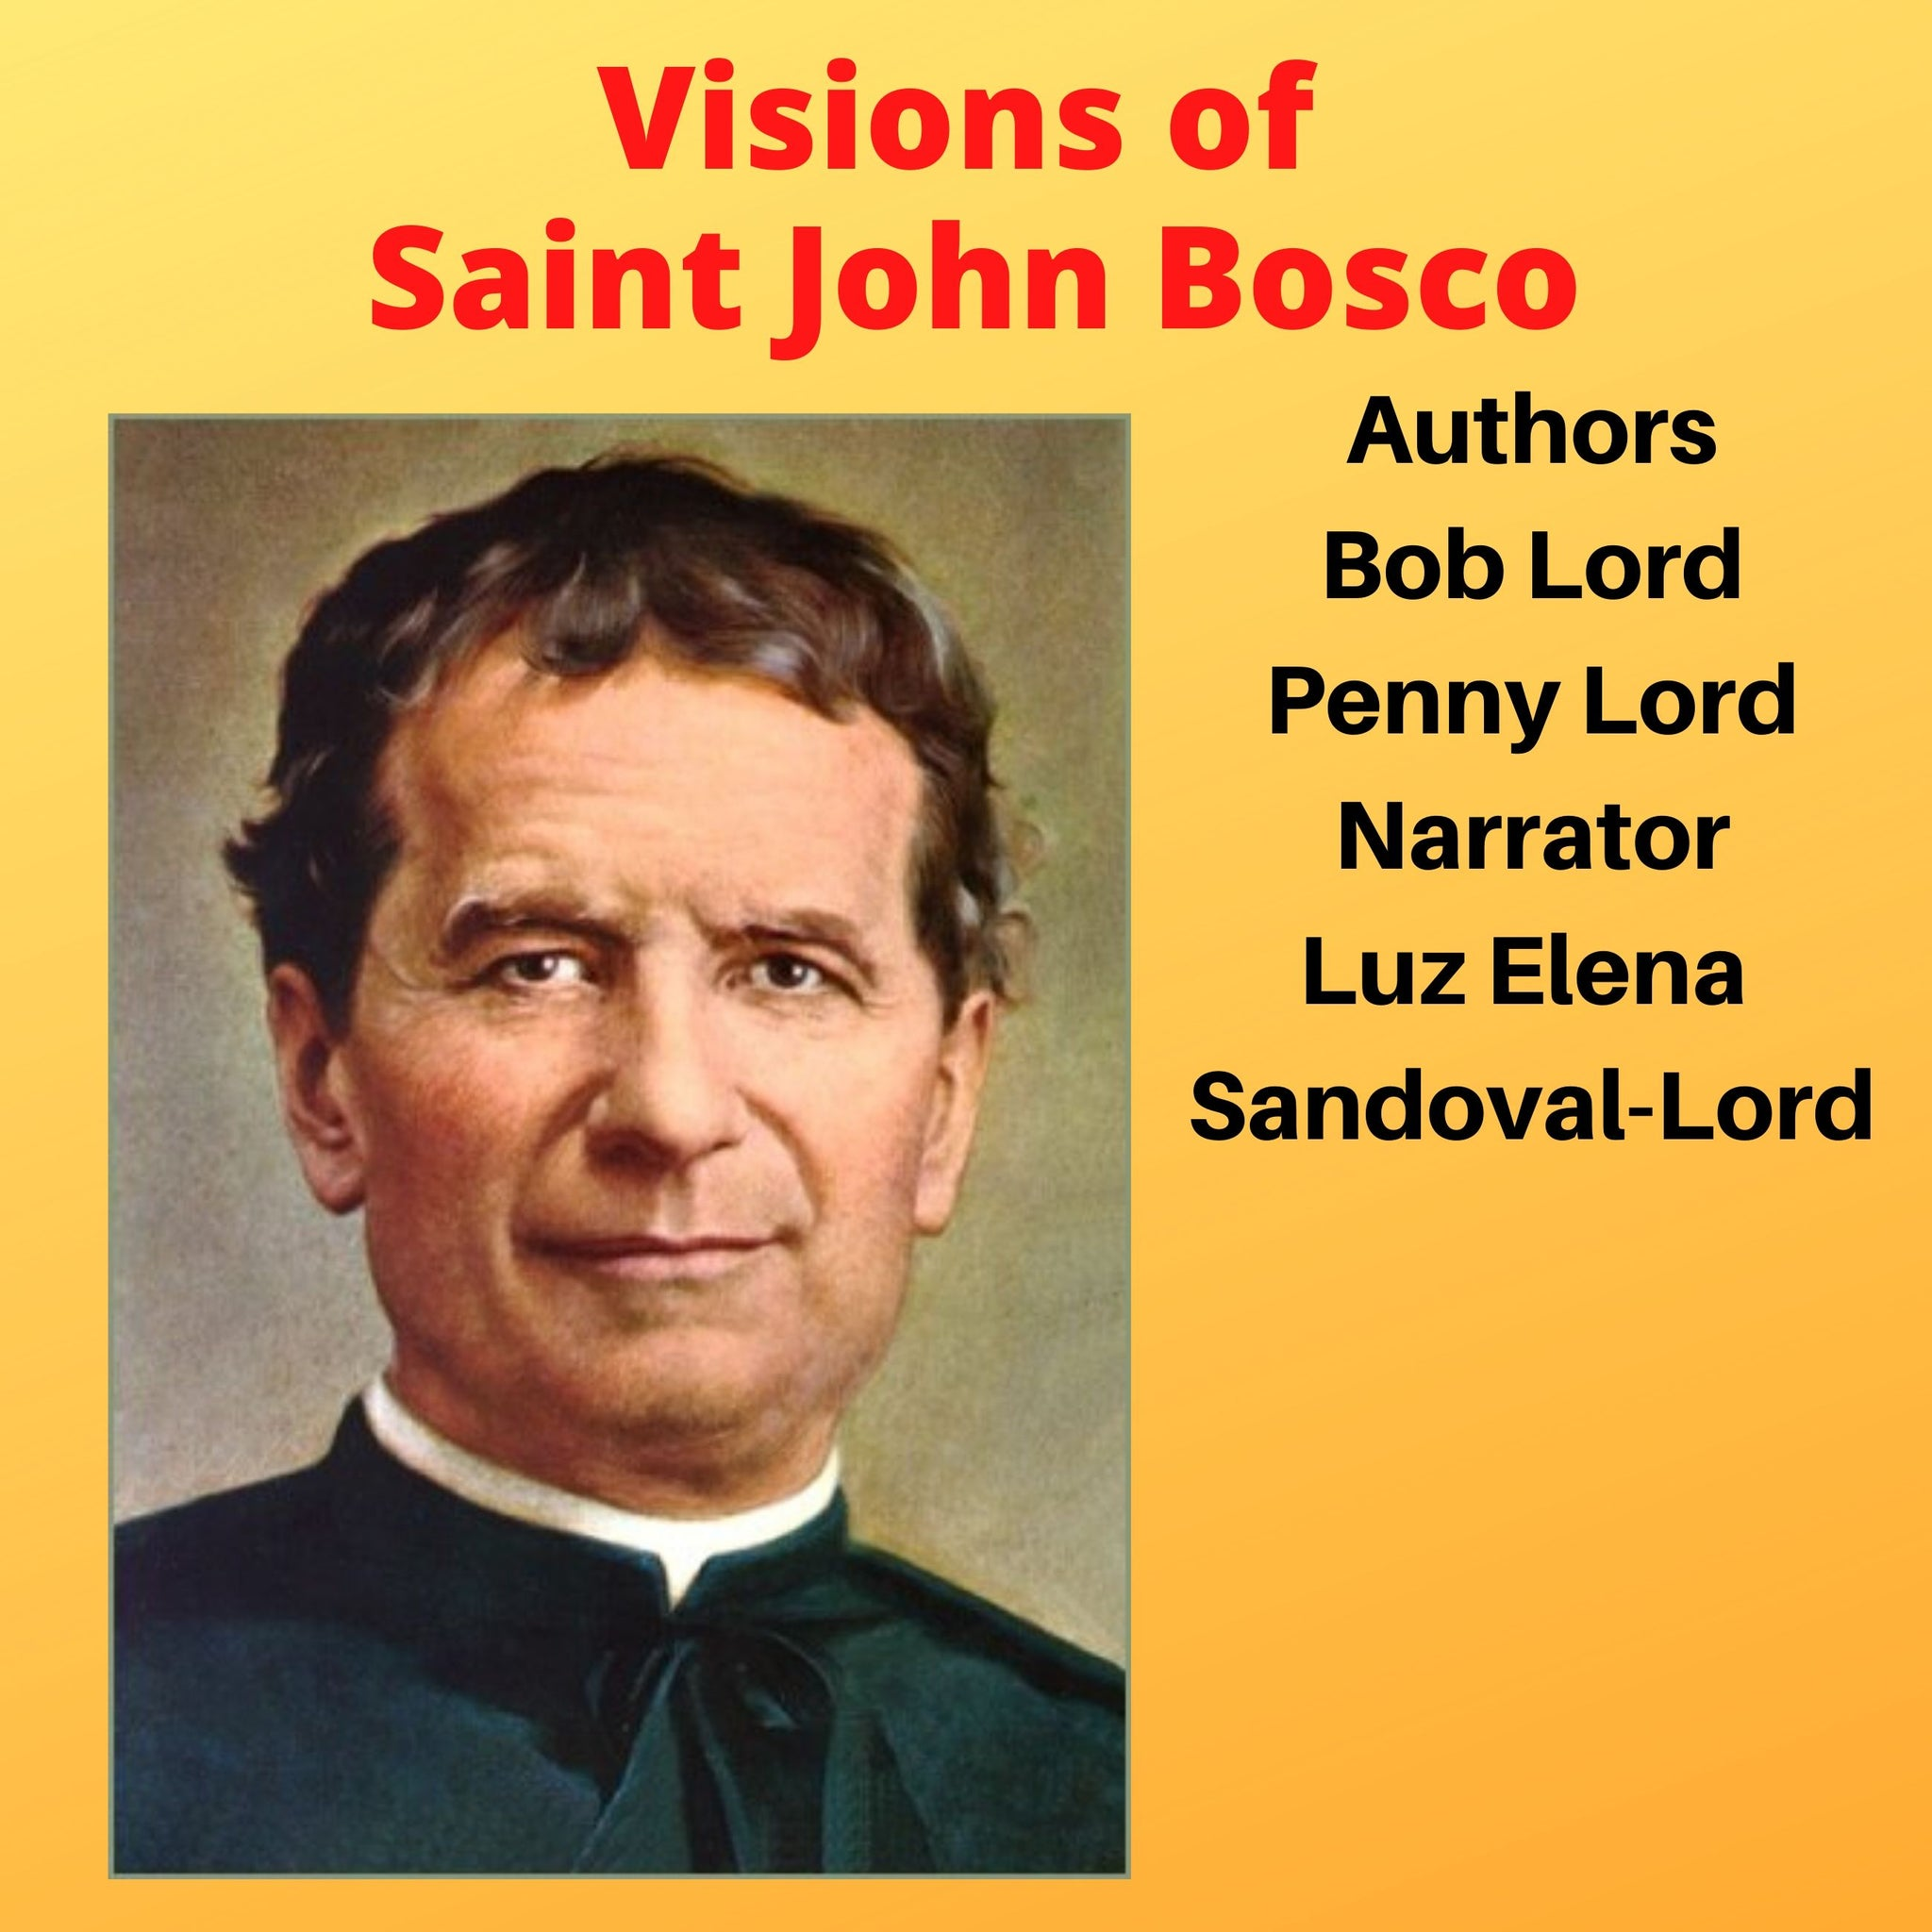 Visions of Saint John Bosco Audiobook Audiobook Bob and Penny Lord Ministry